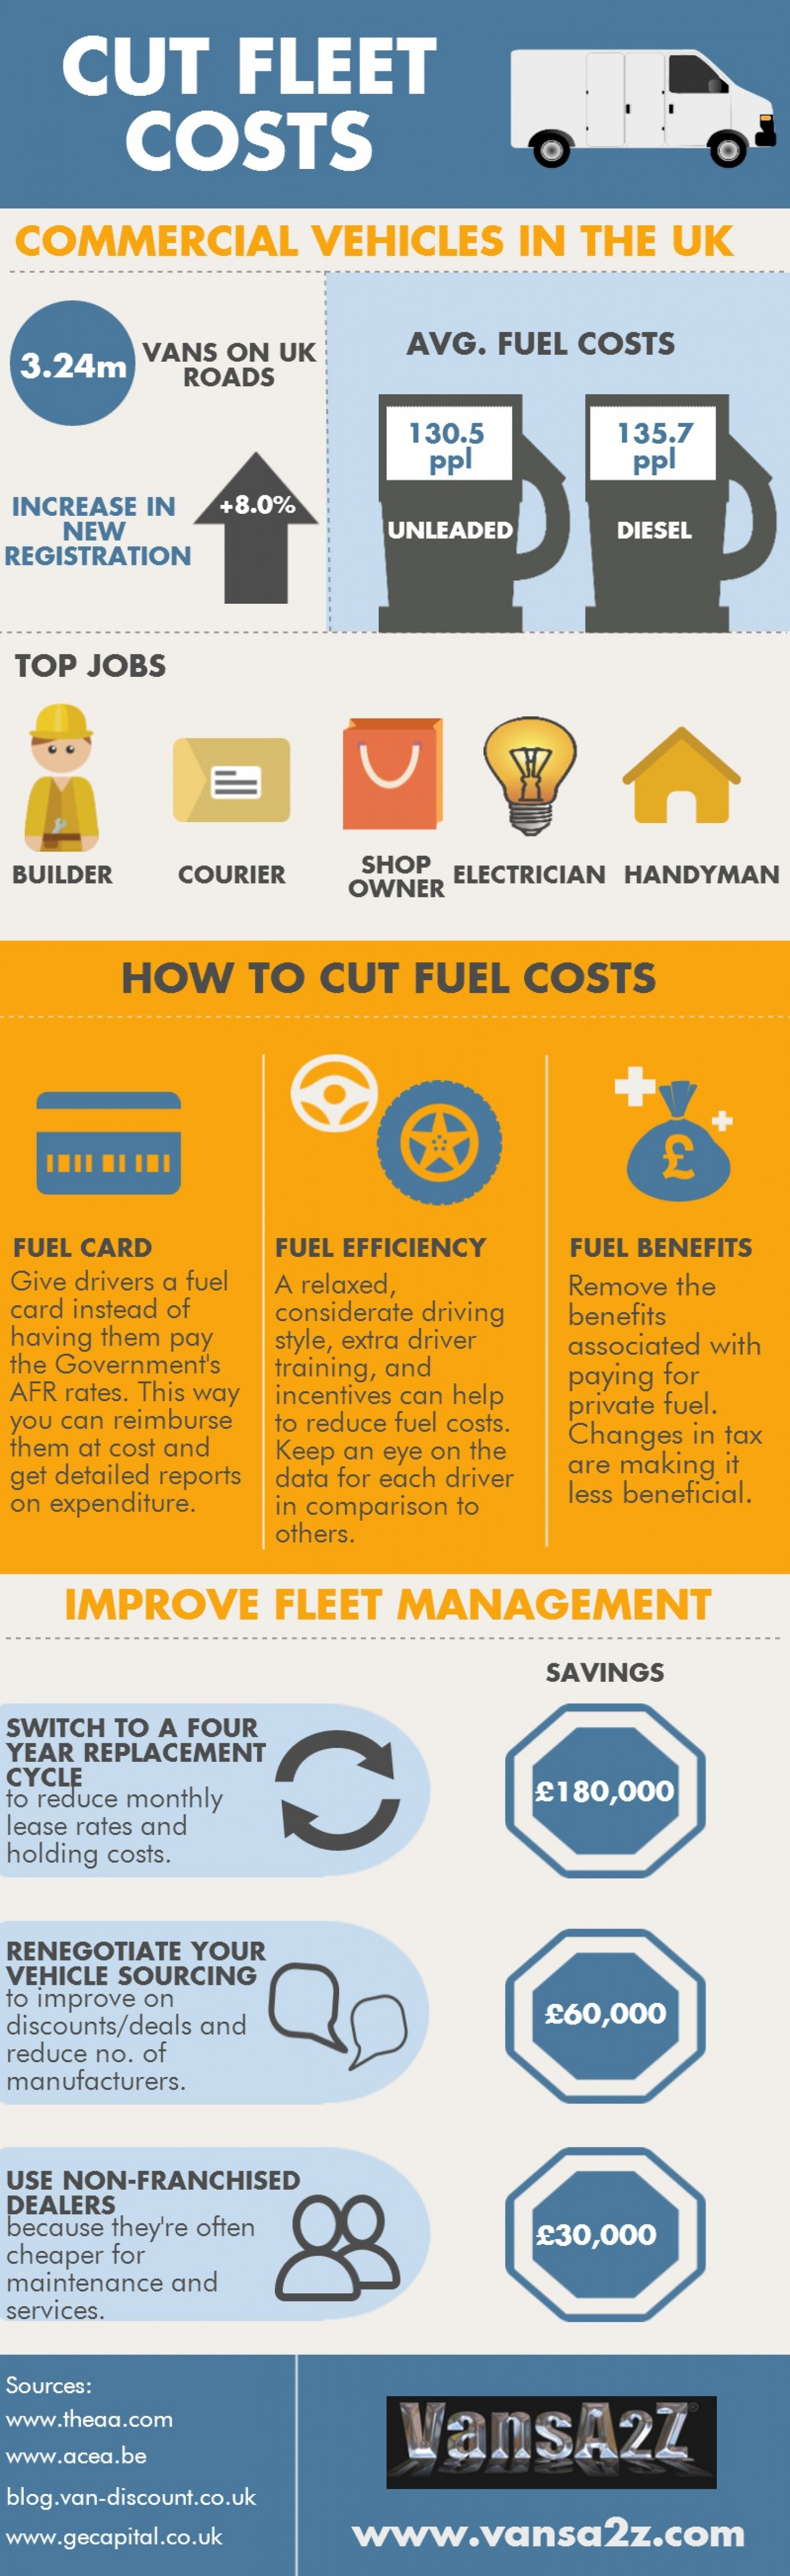 Cut Fleet Costs Infographic